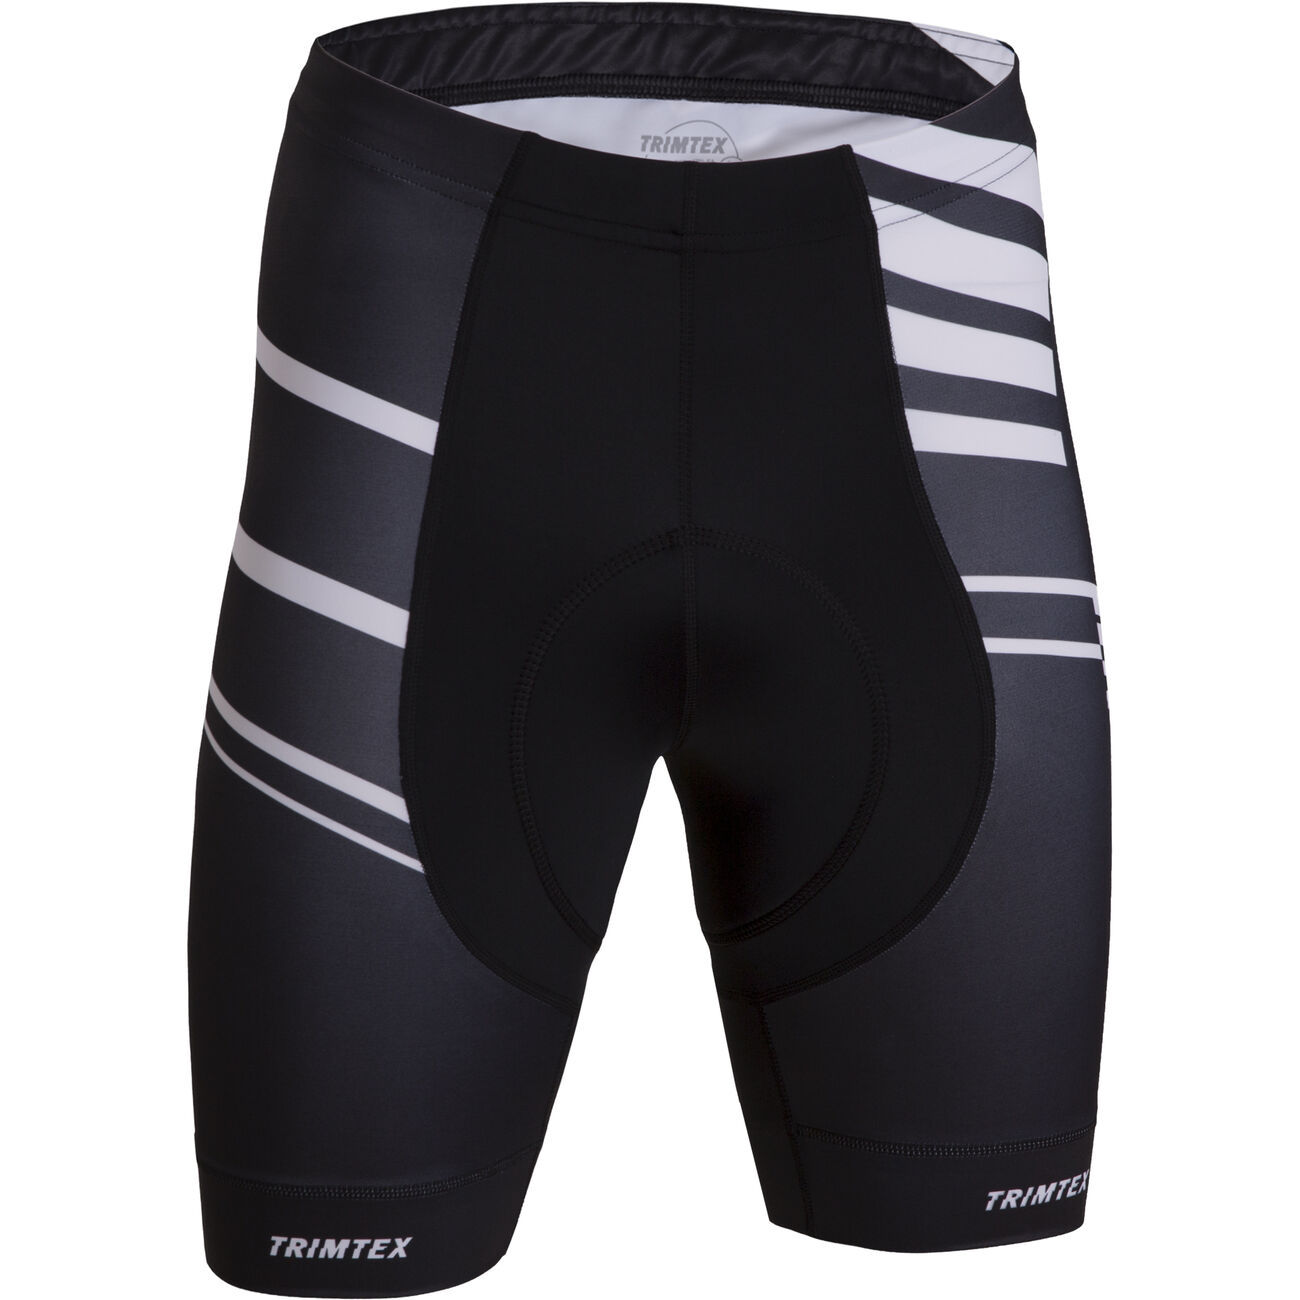 Elite cycling shorts men's